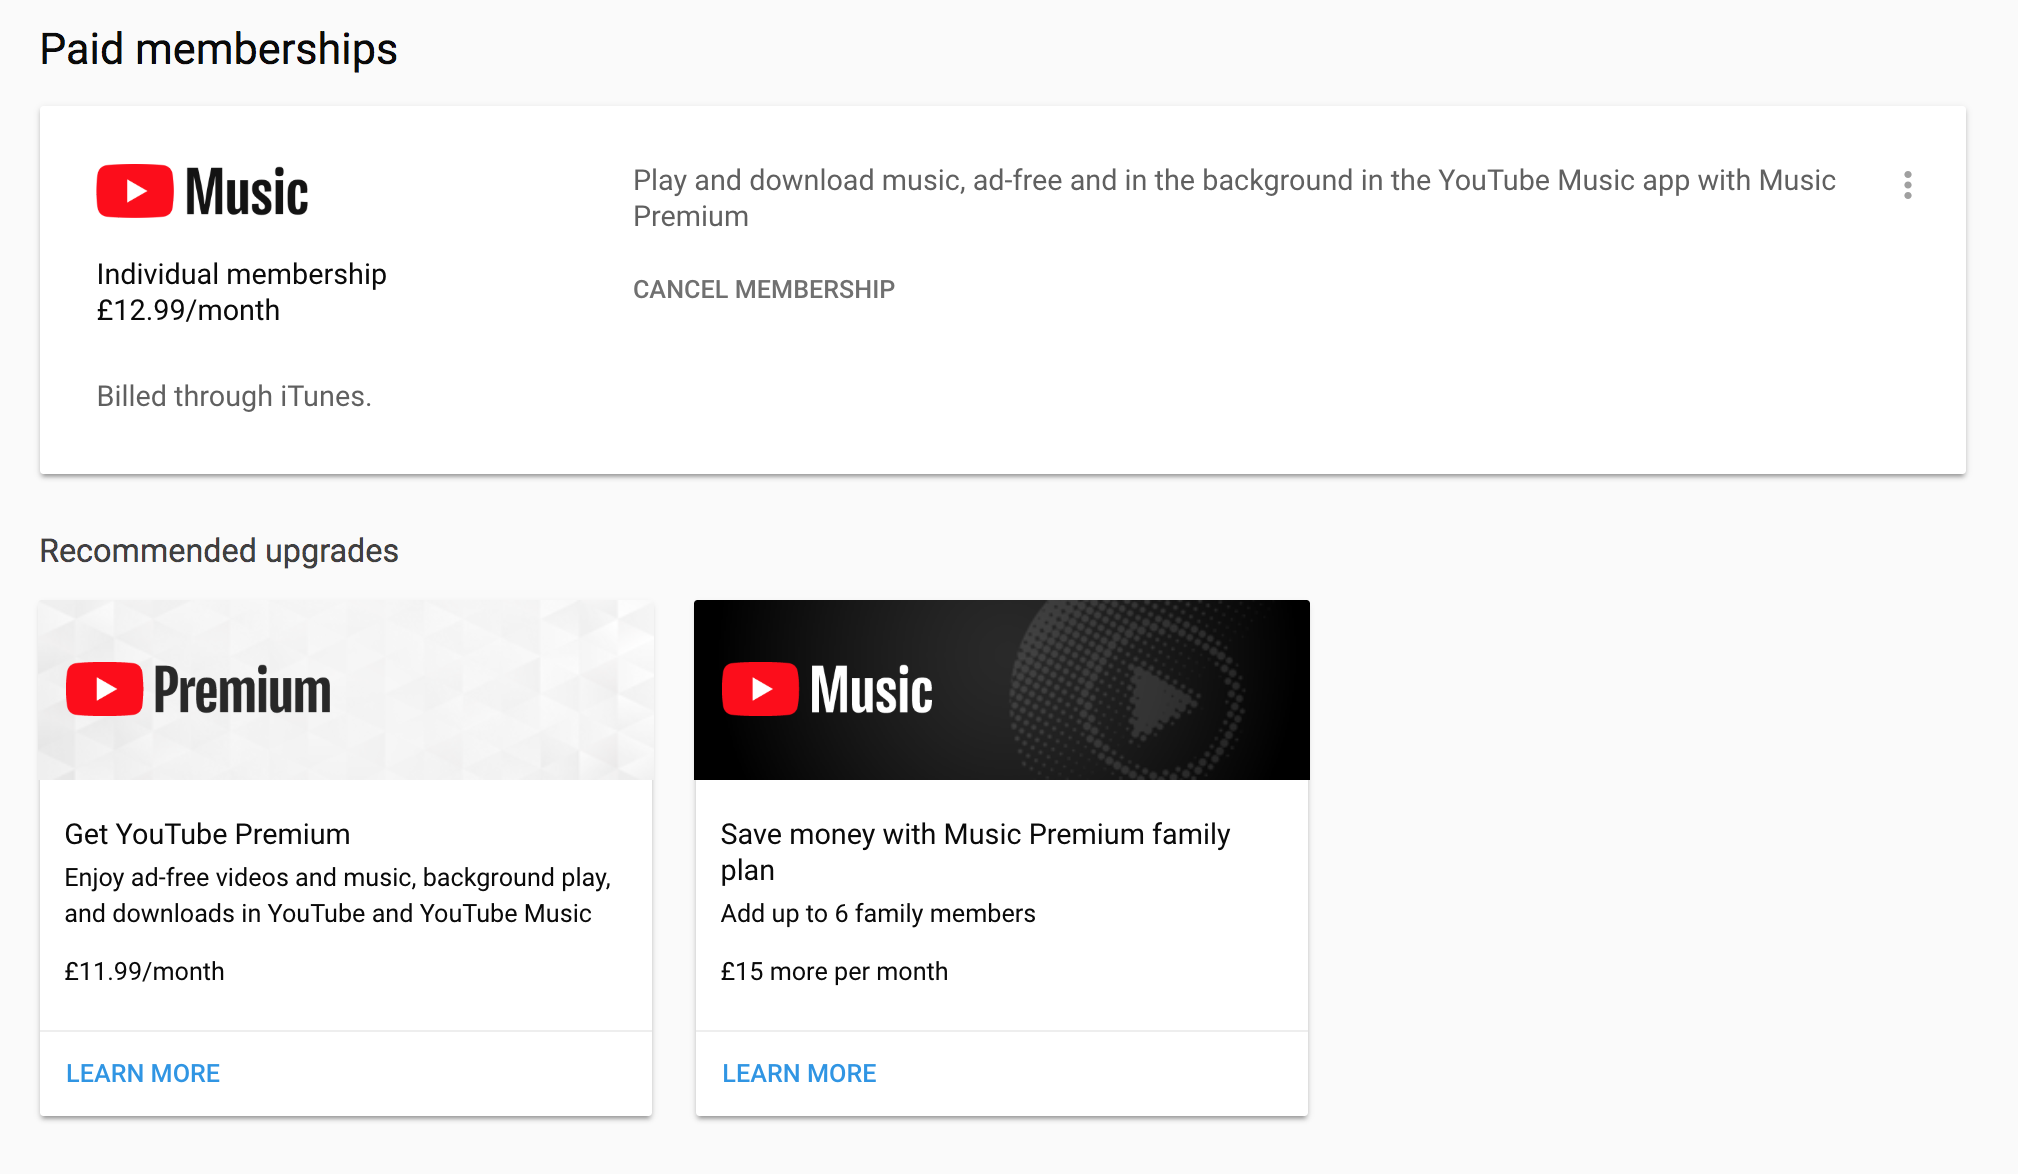 Why is my YouTube Music monthly fee £12.99 when the Premium.